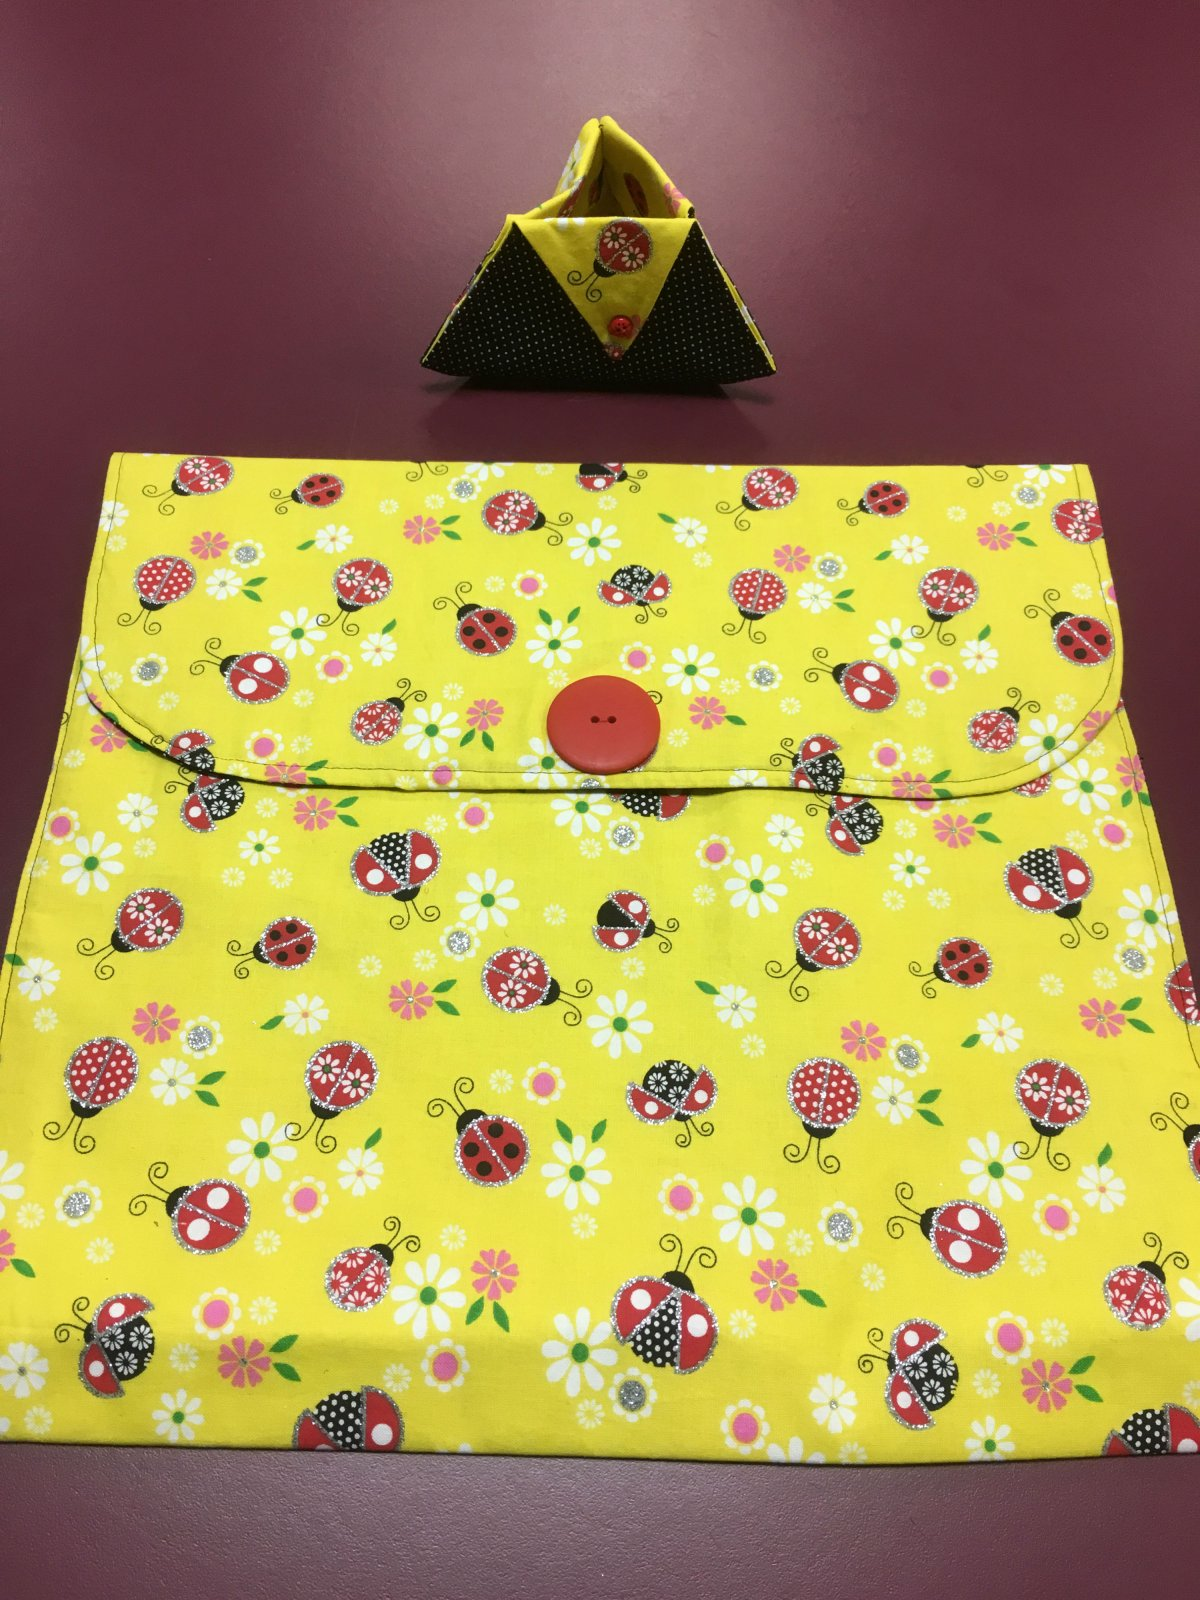 Project bag and ort bag - Yellow, Floral, and Ladybugs 14 x 13.25